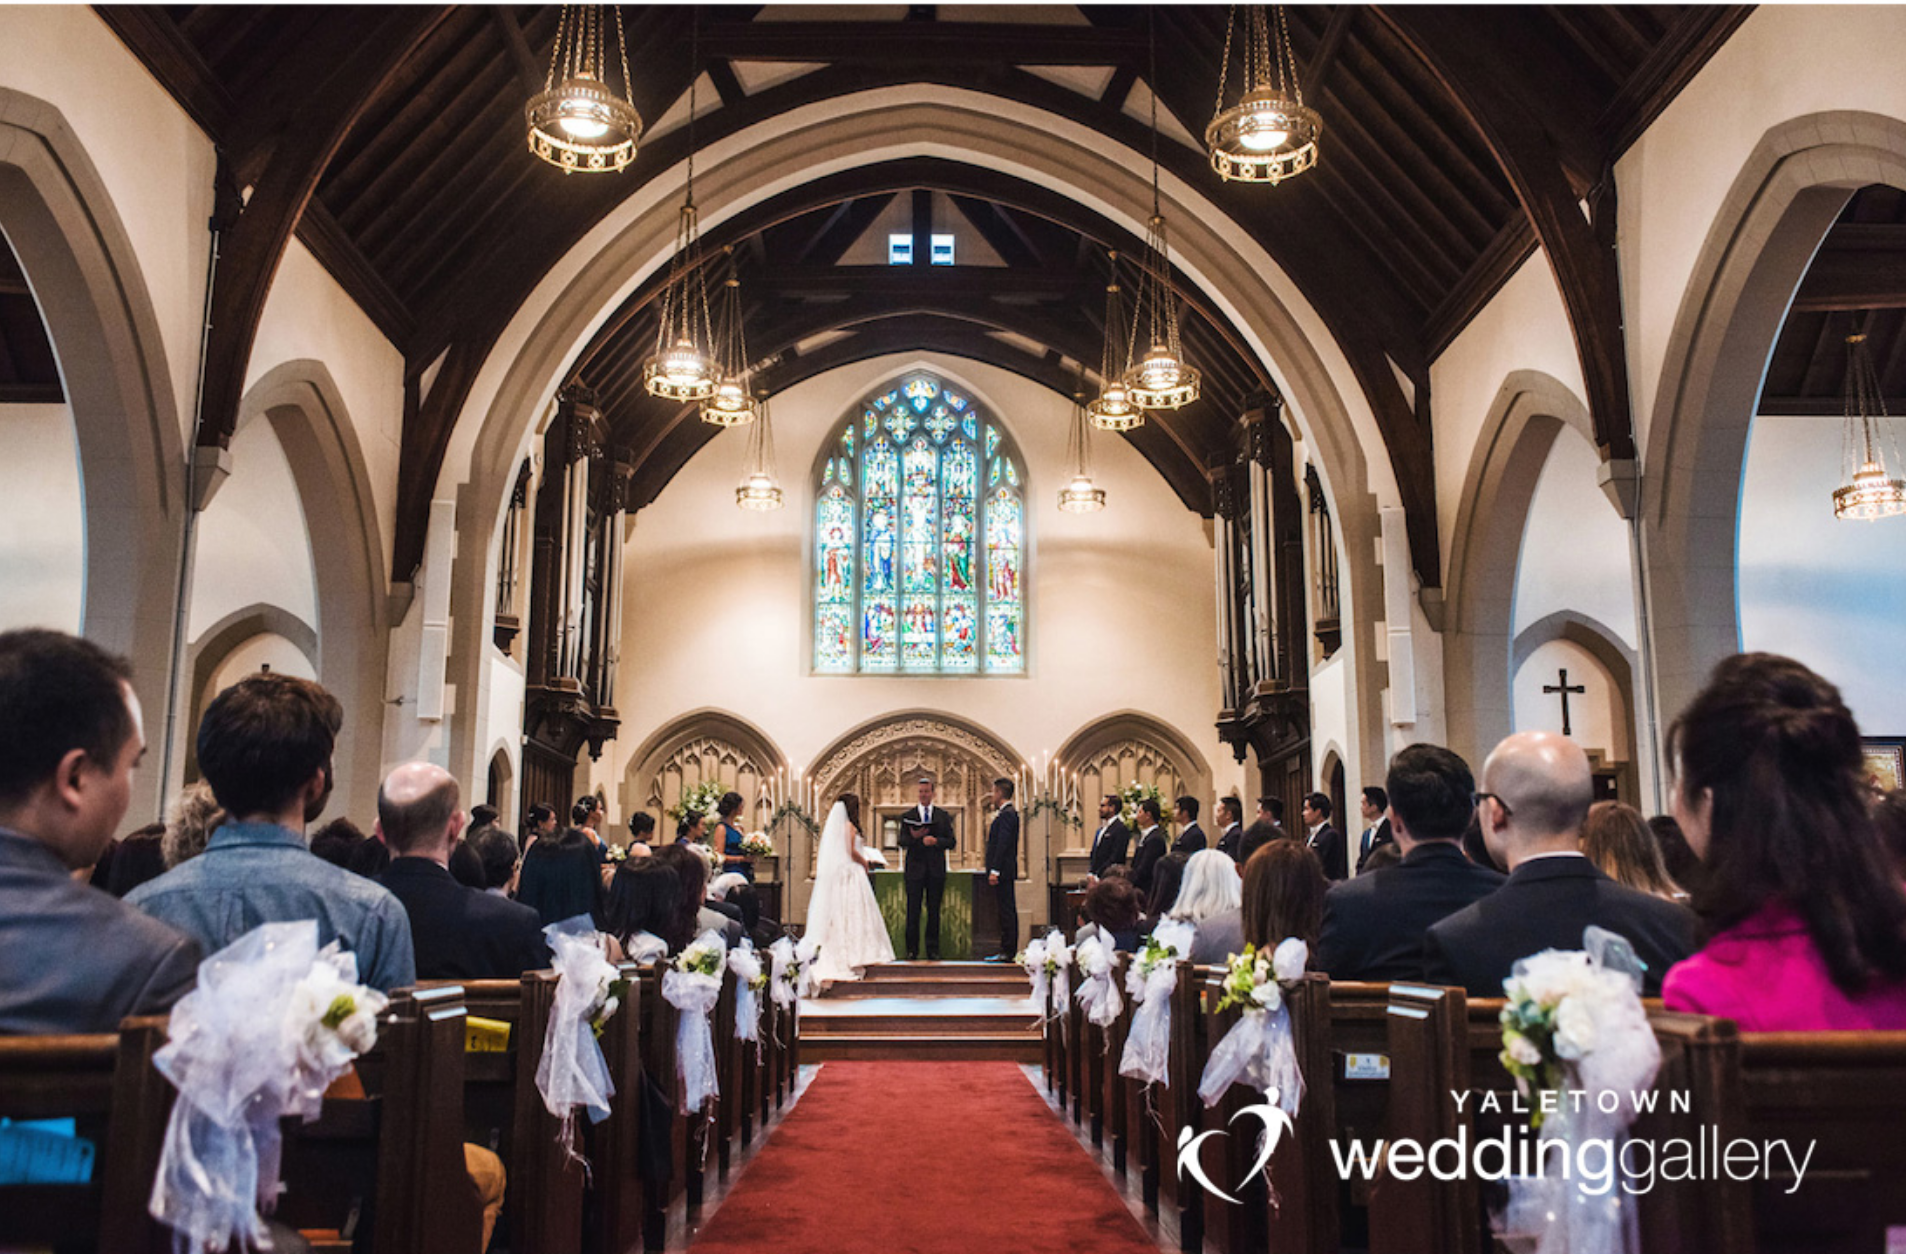 canadian-memorial-church-wedding-ceremony-yaletown-wedding-gallery-vancouver-wedding-photographers-vancouver-wedding-photo